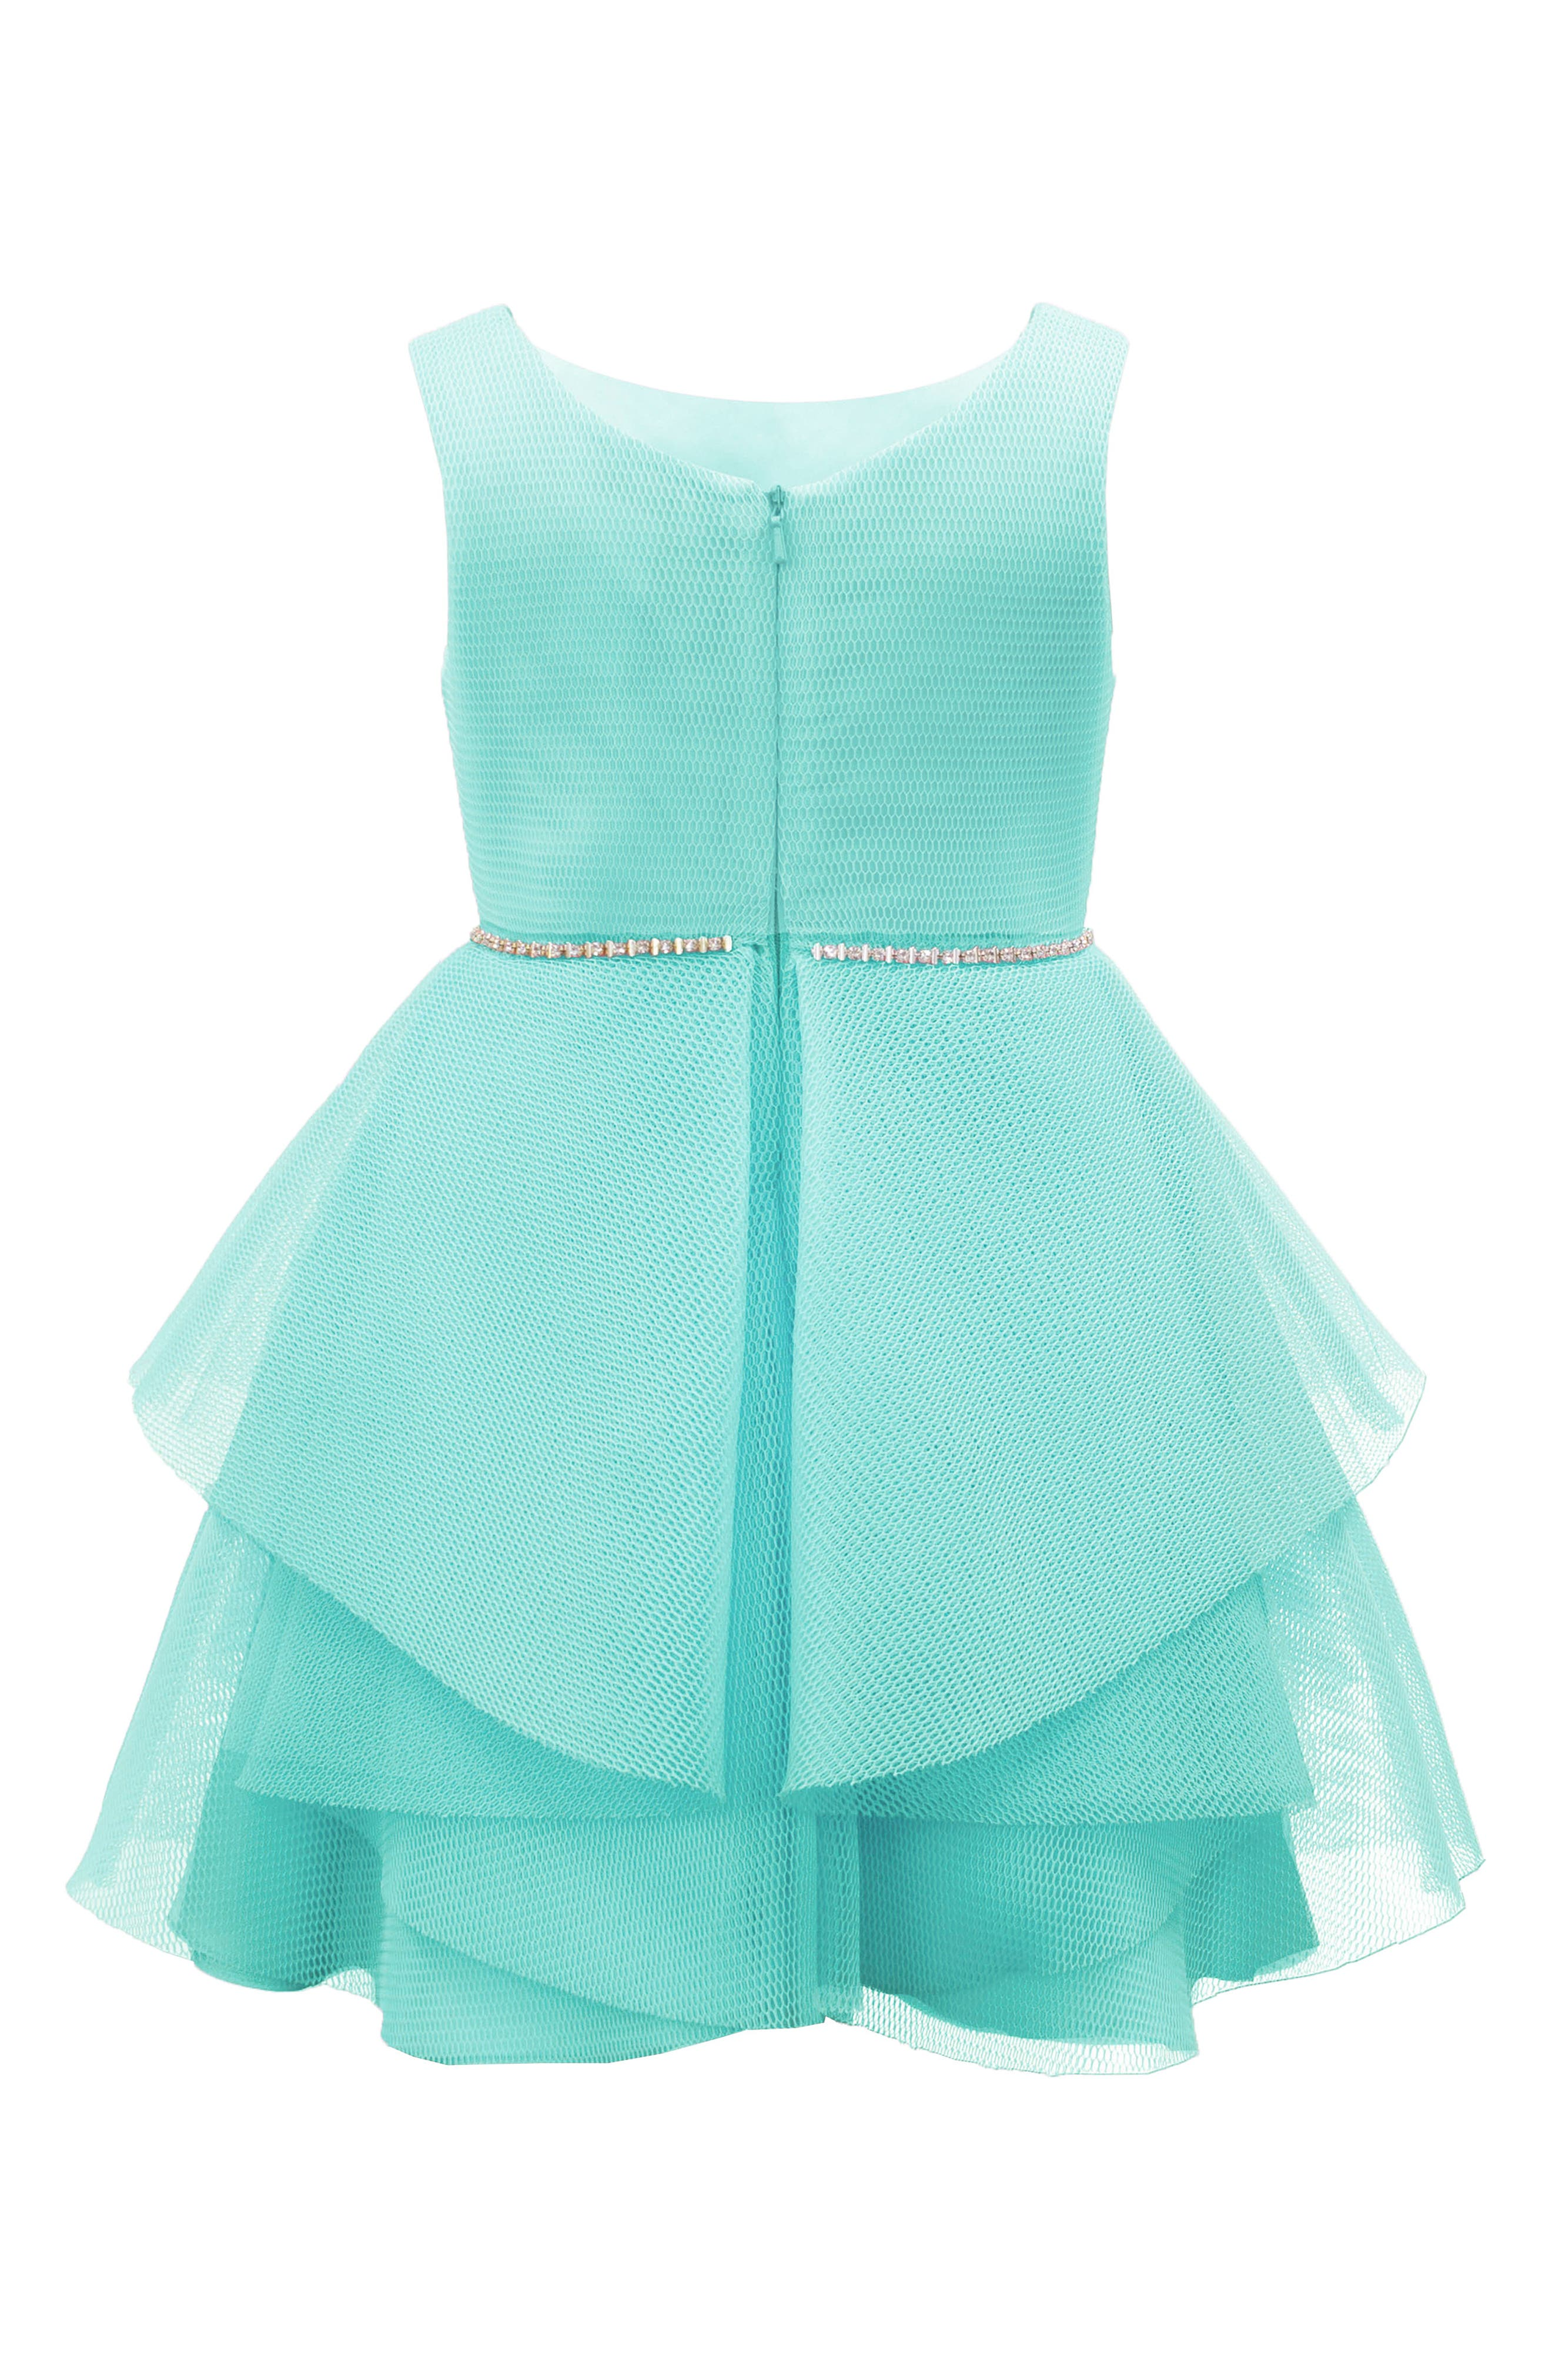 Techno Mesh Fit & Flare Dress,                             Alternate thumbnail 2, color,                             Turquoise